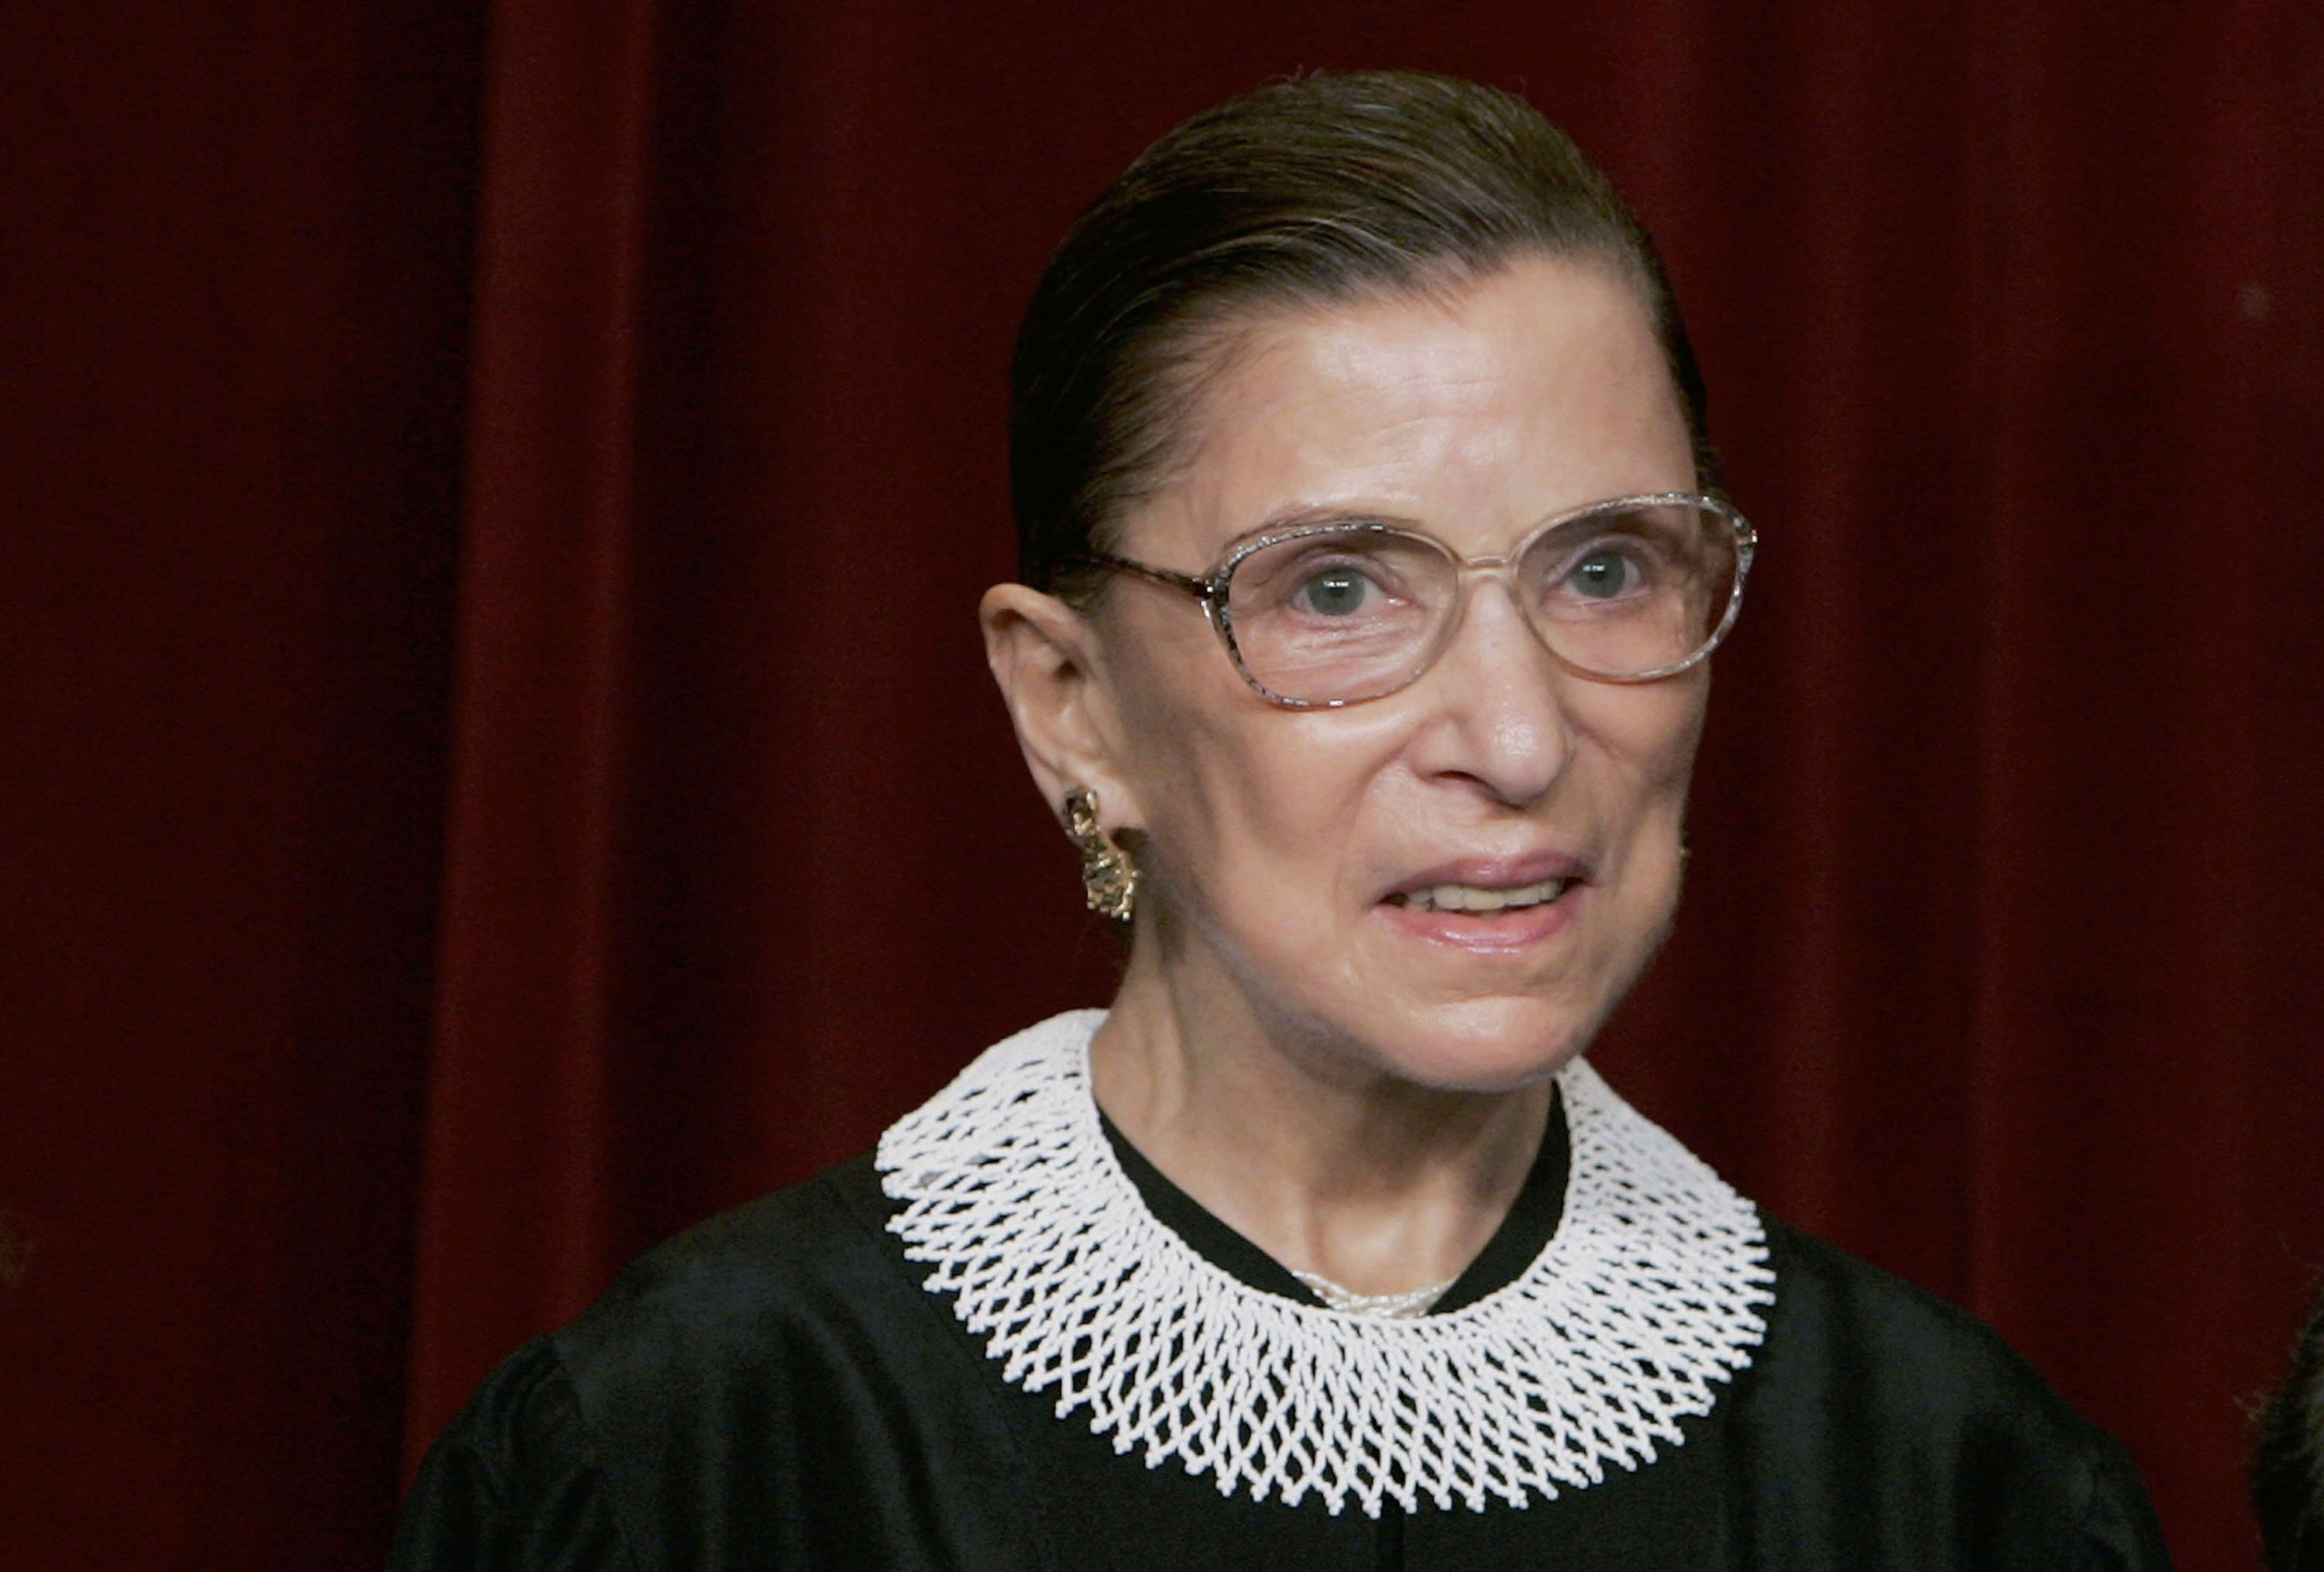 Supreme Court Justice Ruth Bader Ginsburg at a photo session with photographers at the U.S. Supreme Court March 3, 2006 in Washington DC | Photo: Getty Images